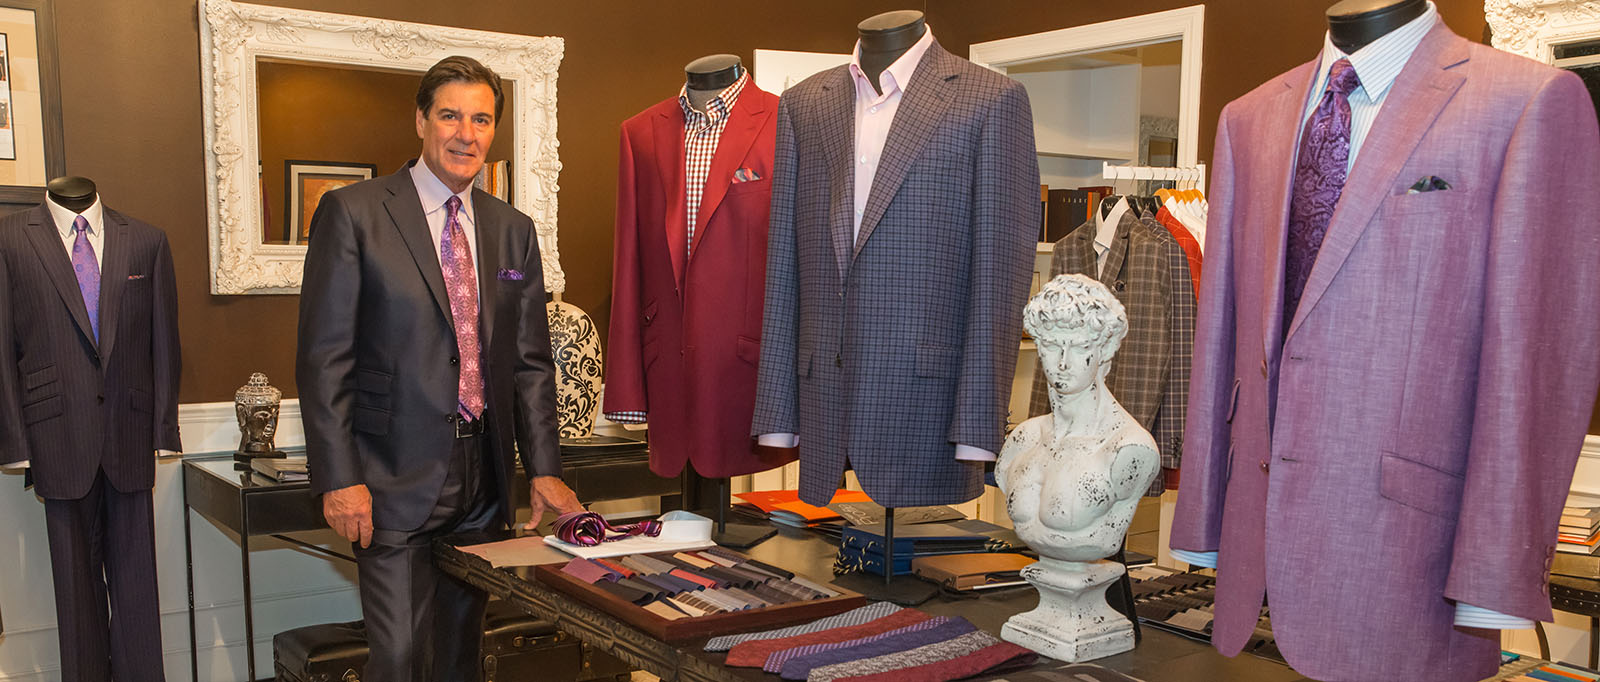 Custom Clothing at RICARDO - Consult Ricardo